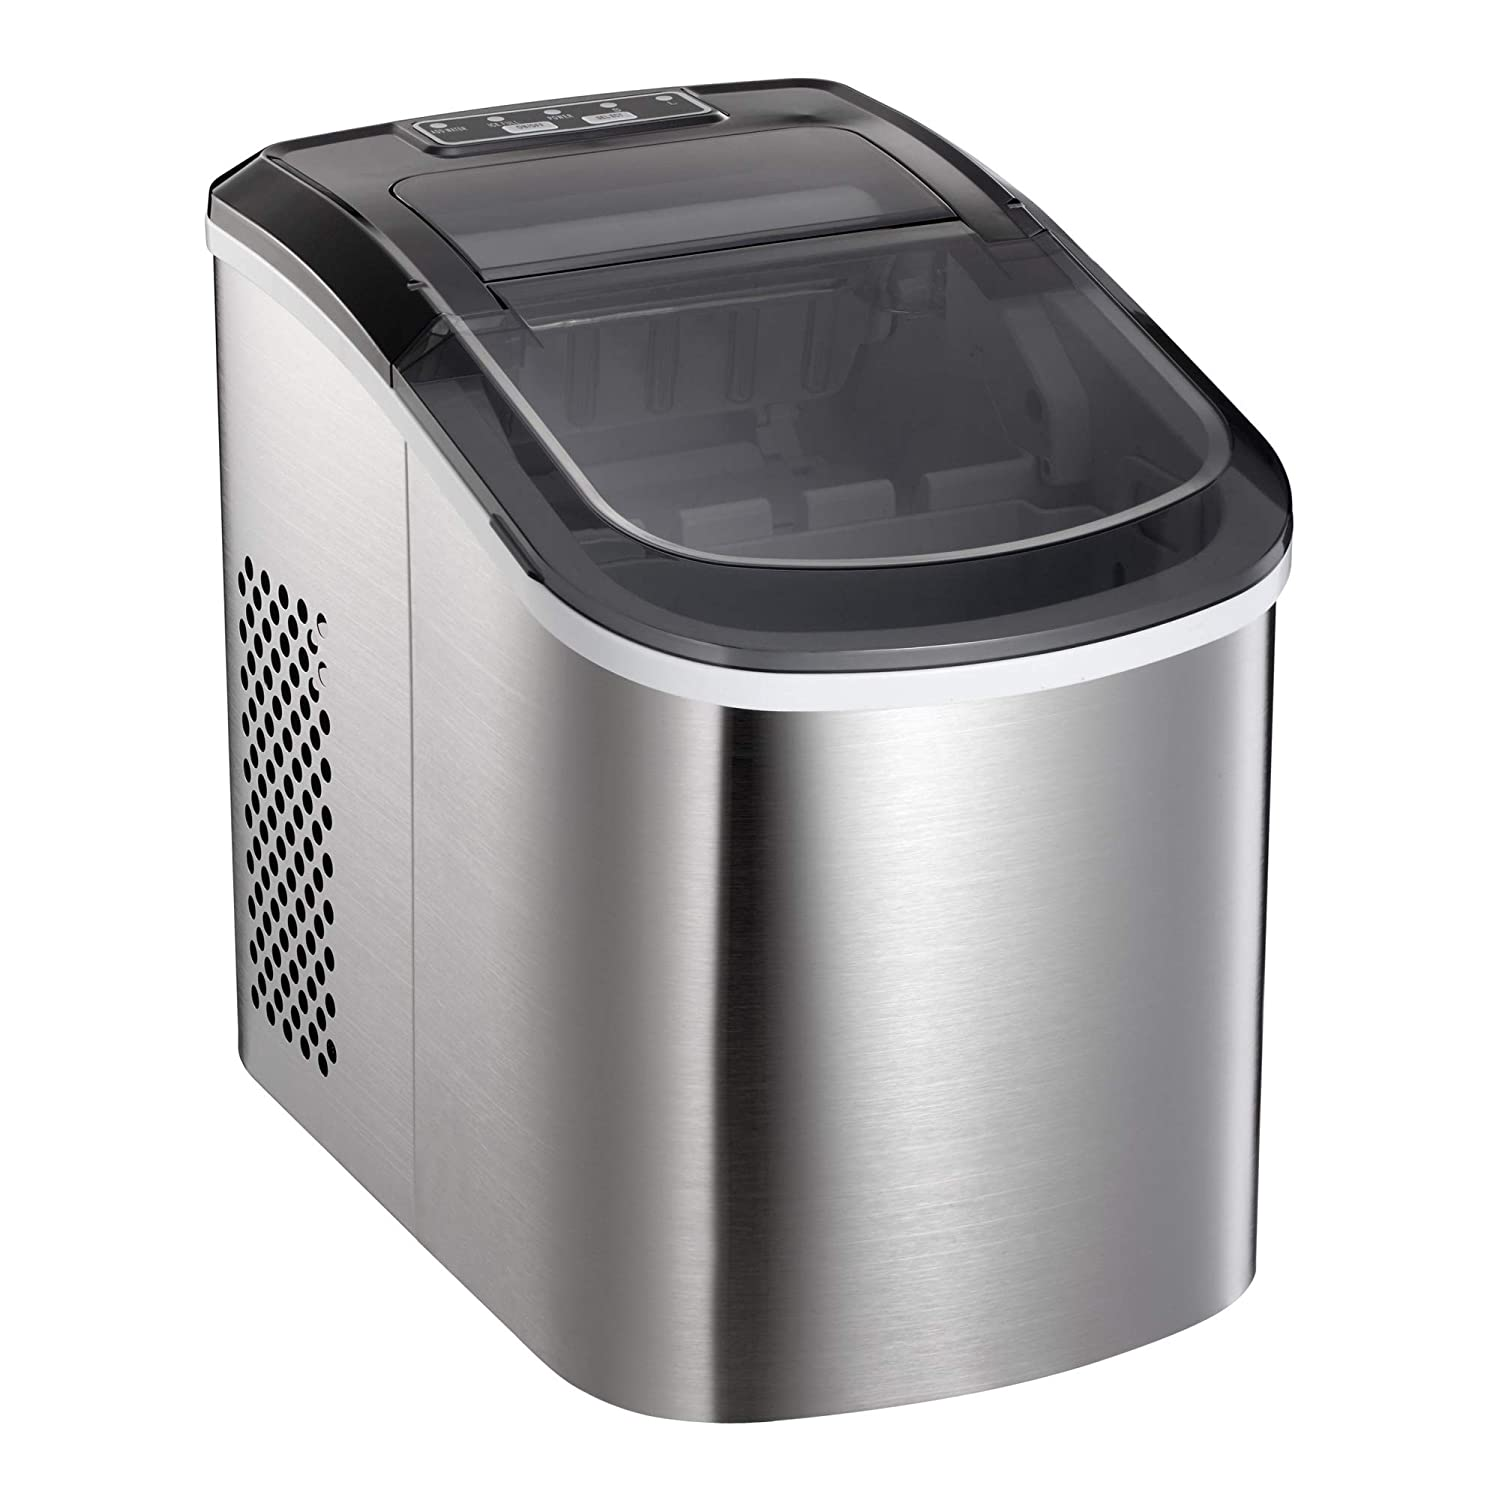 AGLUCKY Ice Maker, Miniature household Compact Electric Ice Maker,High Efficiency Countertop Ice Machine, Ice Quickly Release,1.5Lb Ice Storage,26lbs/24h,Ice Scoop and Basket,Stainless Steel Cover